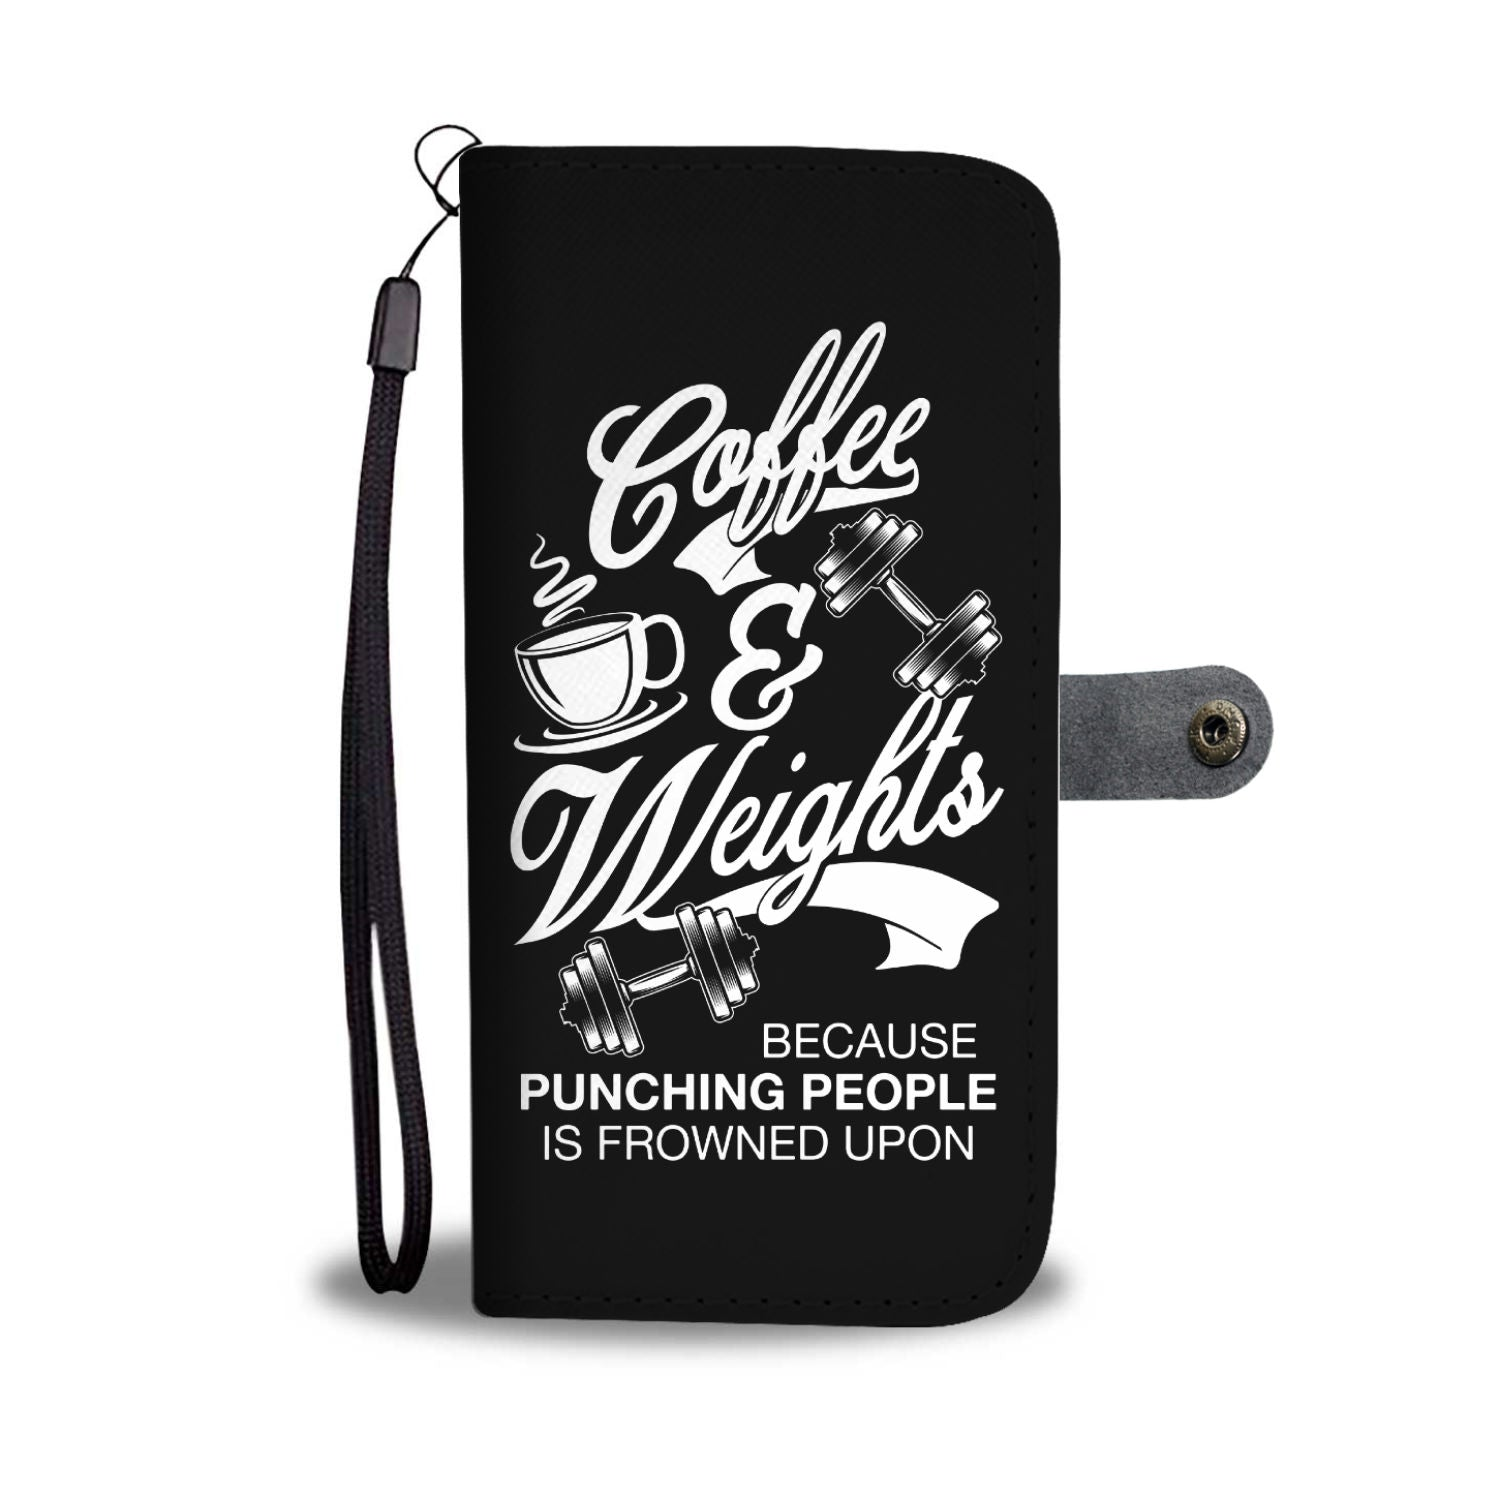 Coffee and Weights Wallet Phone Case